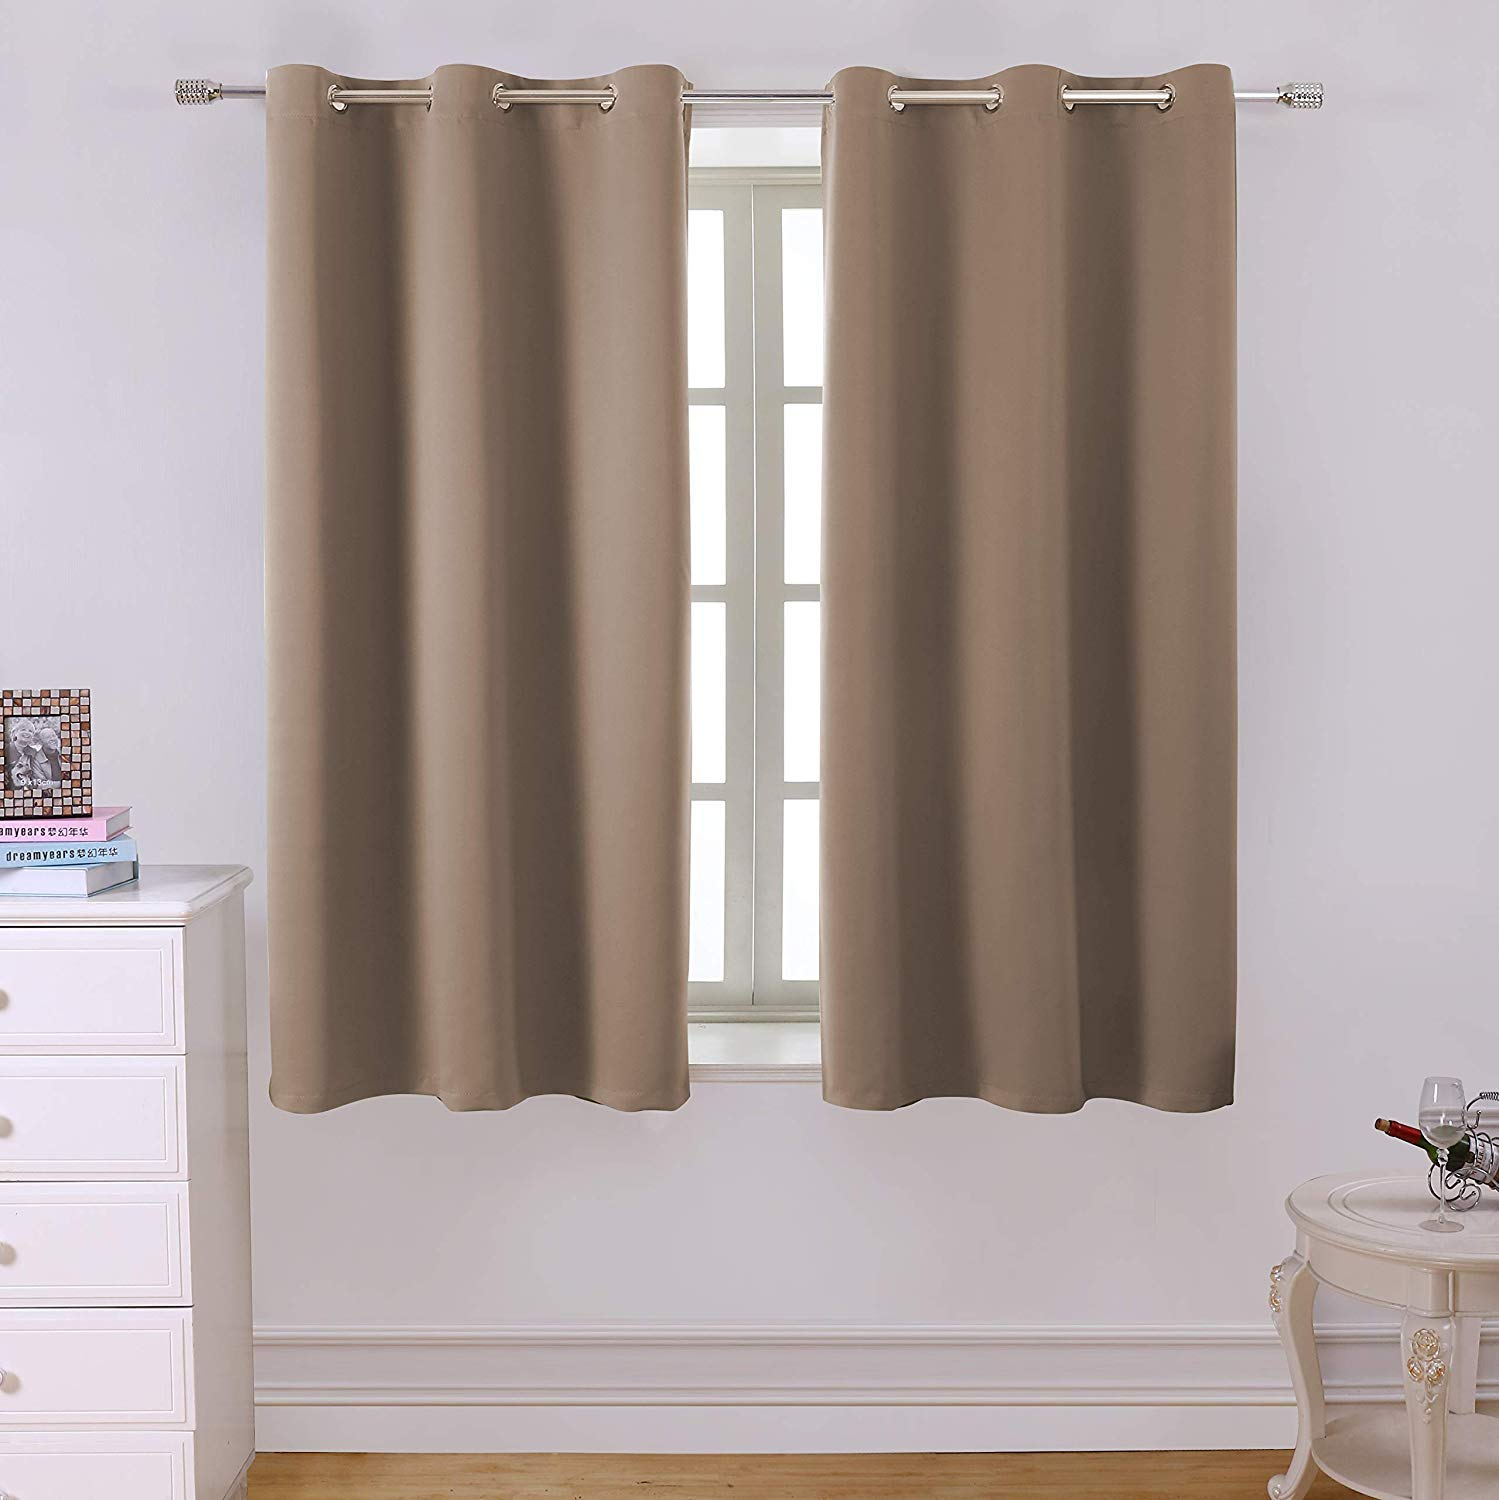 Blackout Curtains Room Darkening Thermal Insulated With Grommet Window  Curtain For Bedroom 2 Panels Regarding All Seasons Blackout Window Curtains (Image 8 of 20)